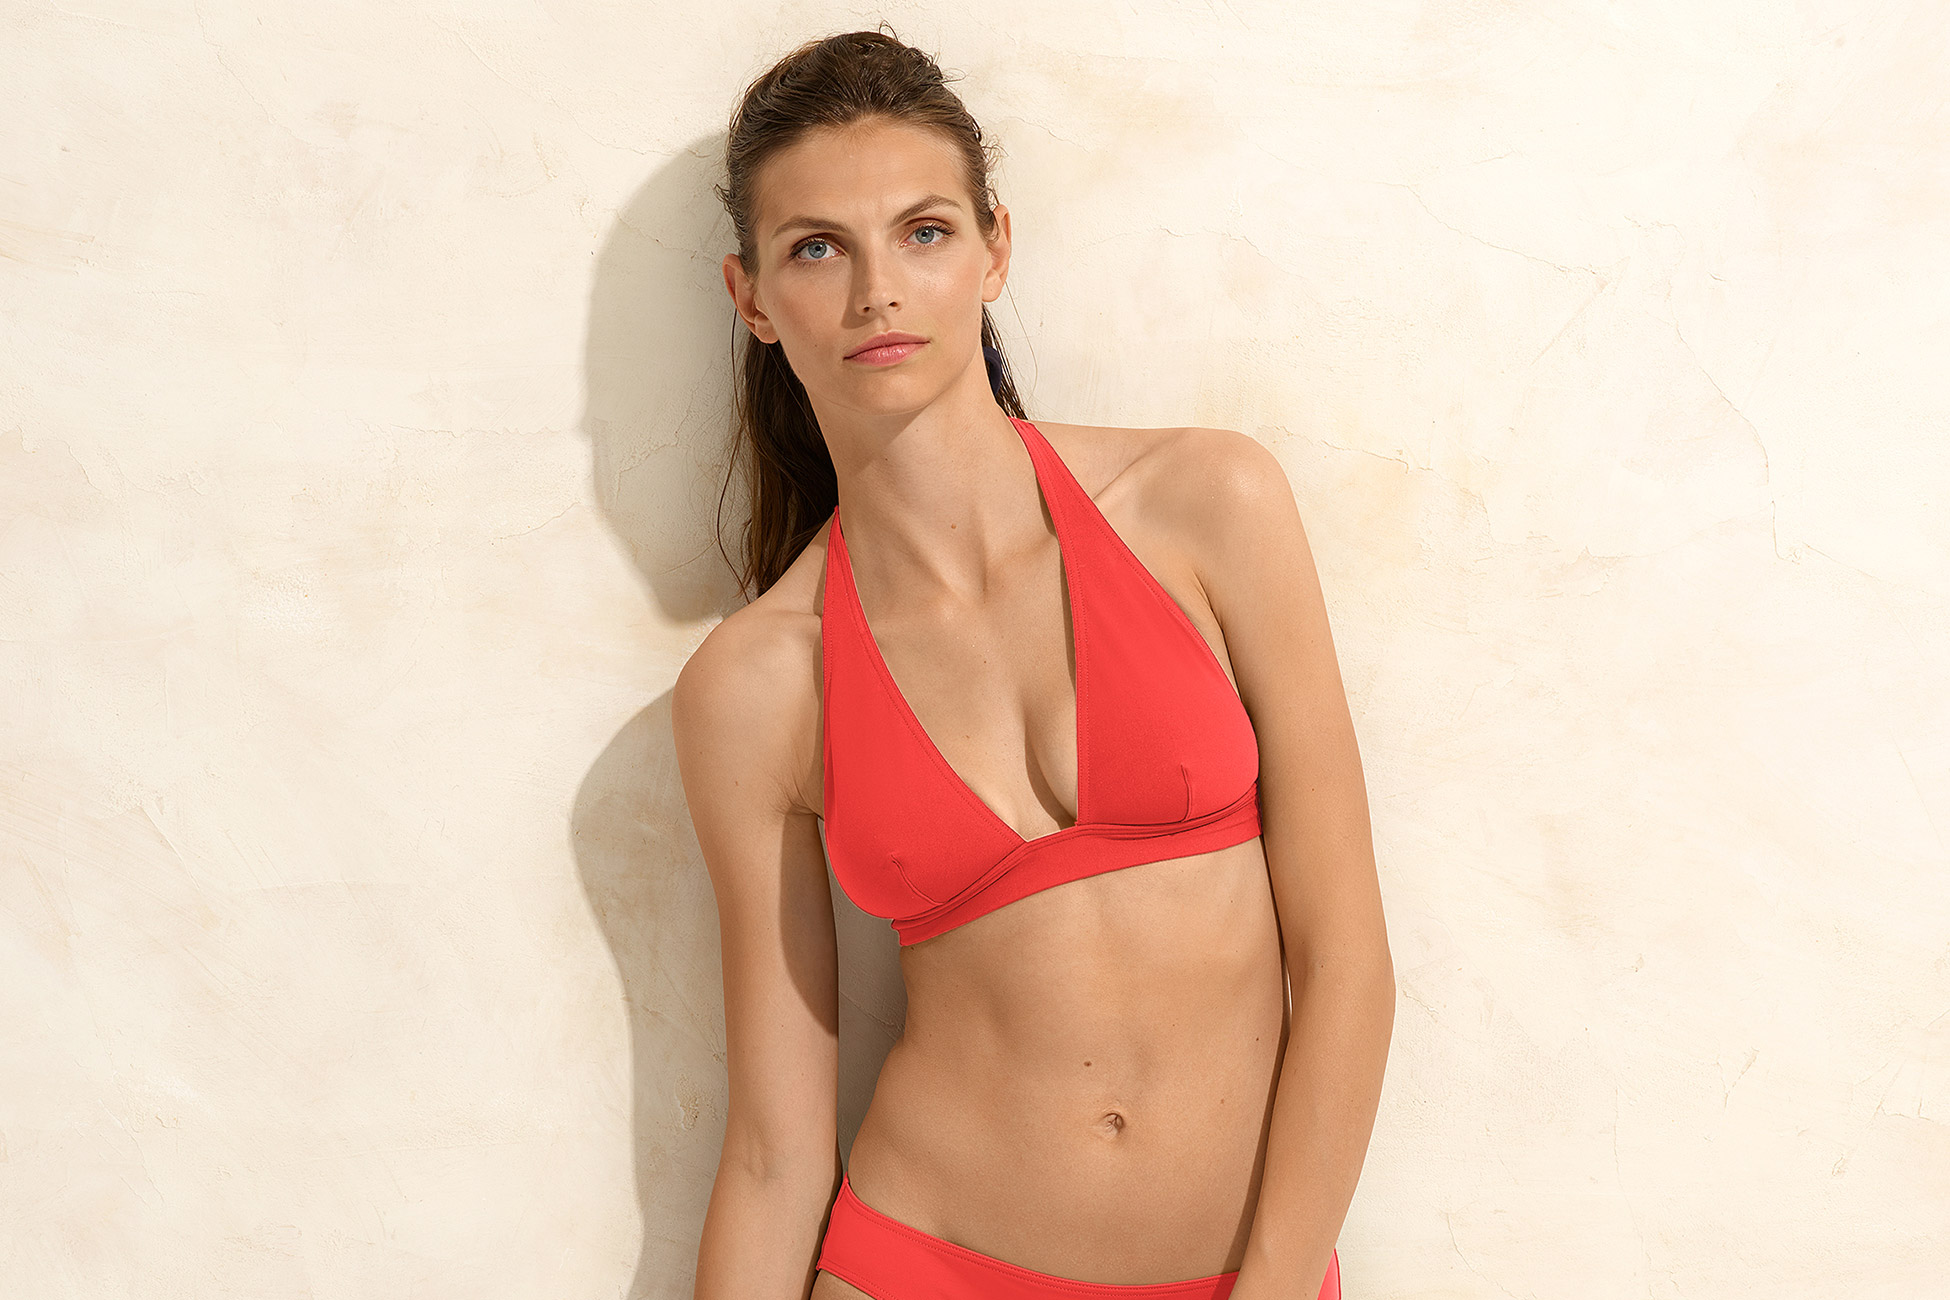 Foulard Full-cup triangle bikini top standard view 1